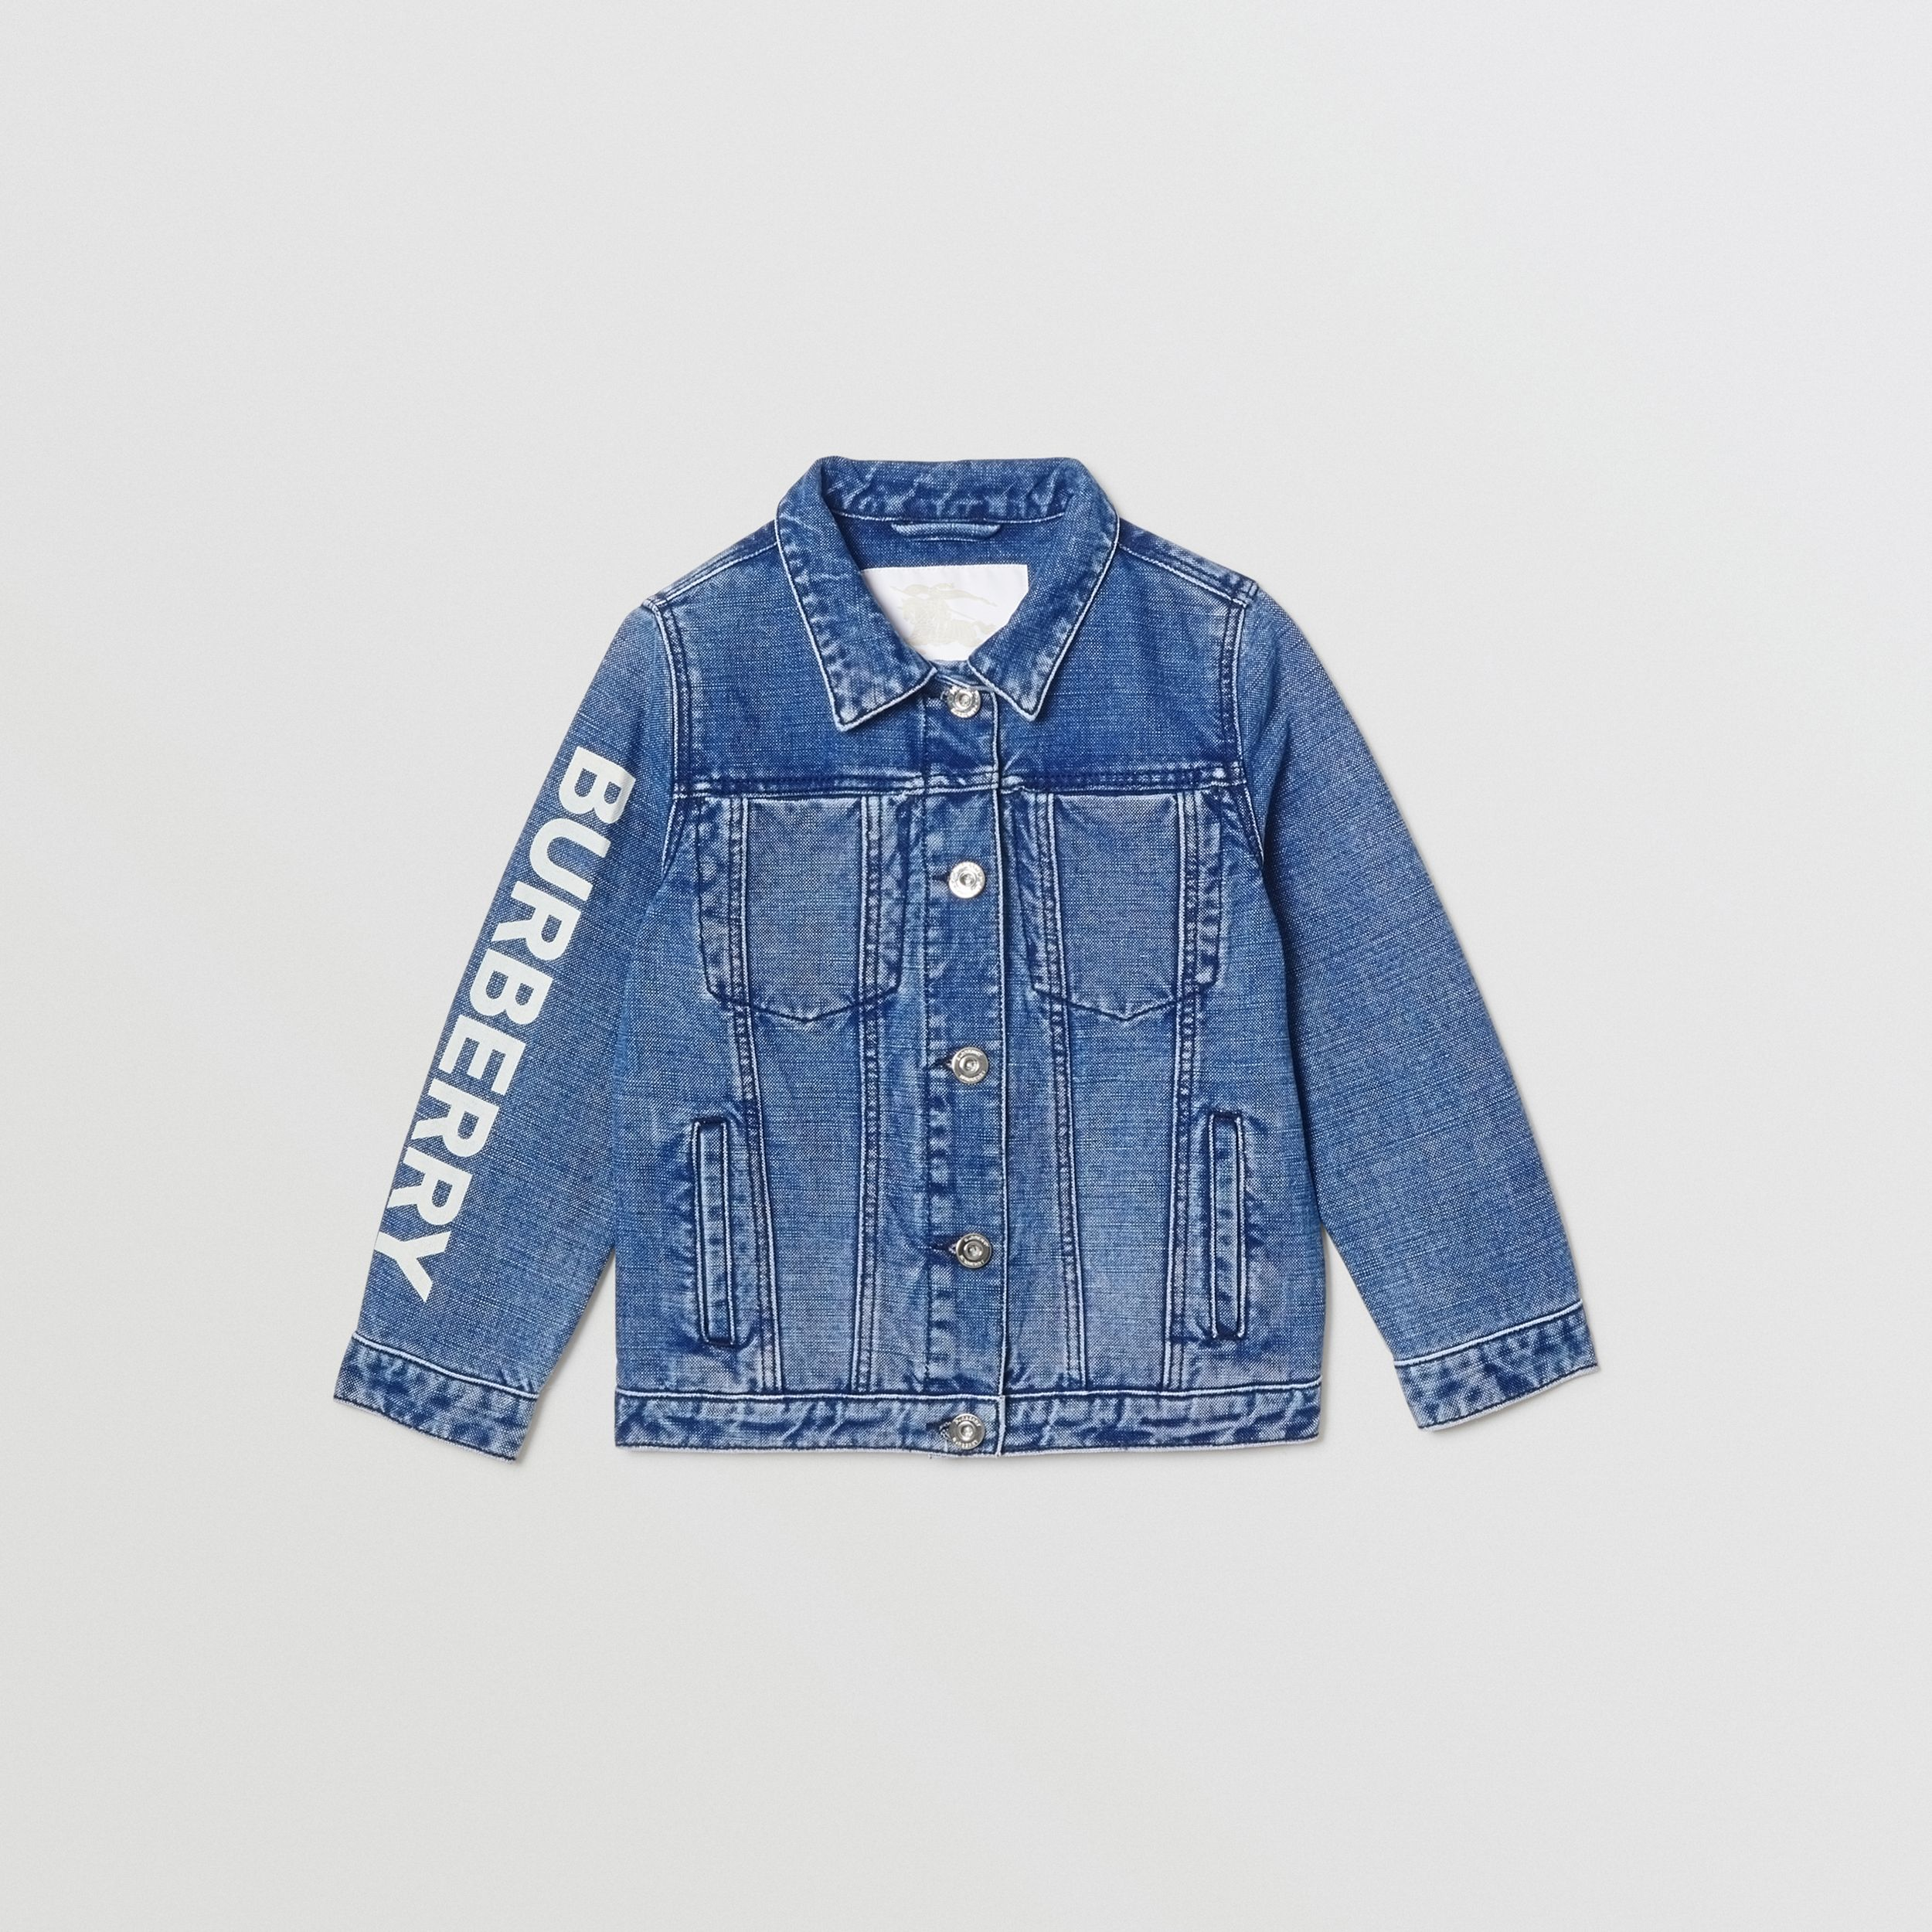 Logo Print Japanese Denim Jacket in Indigo | Burberry - 1